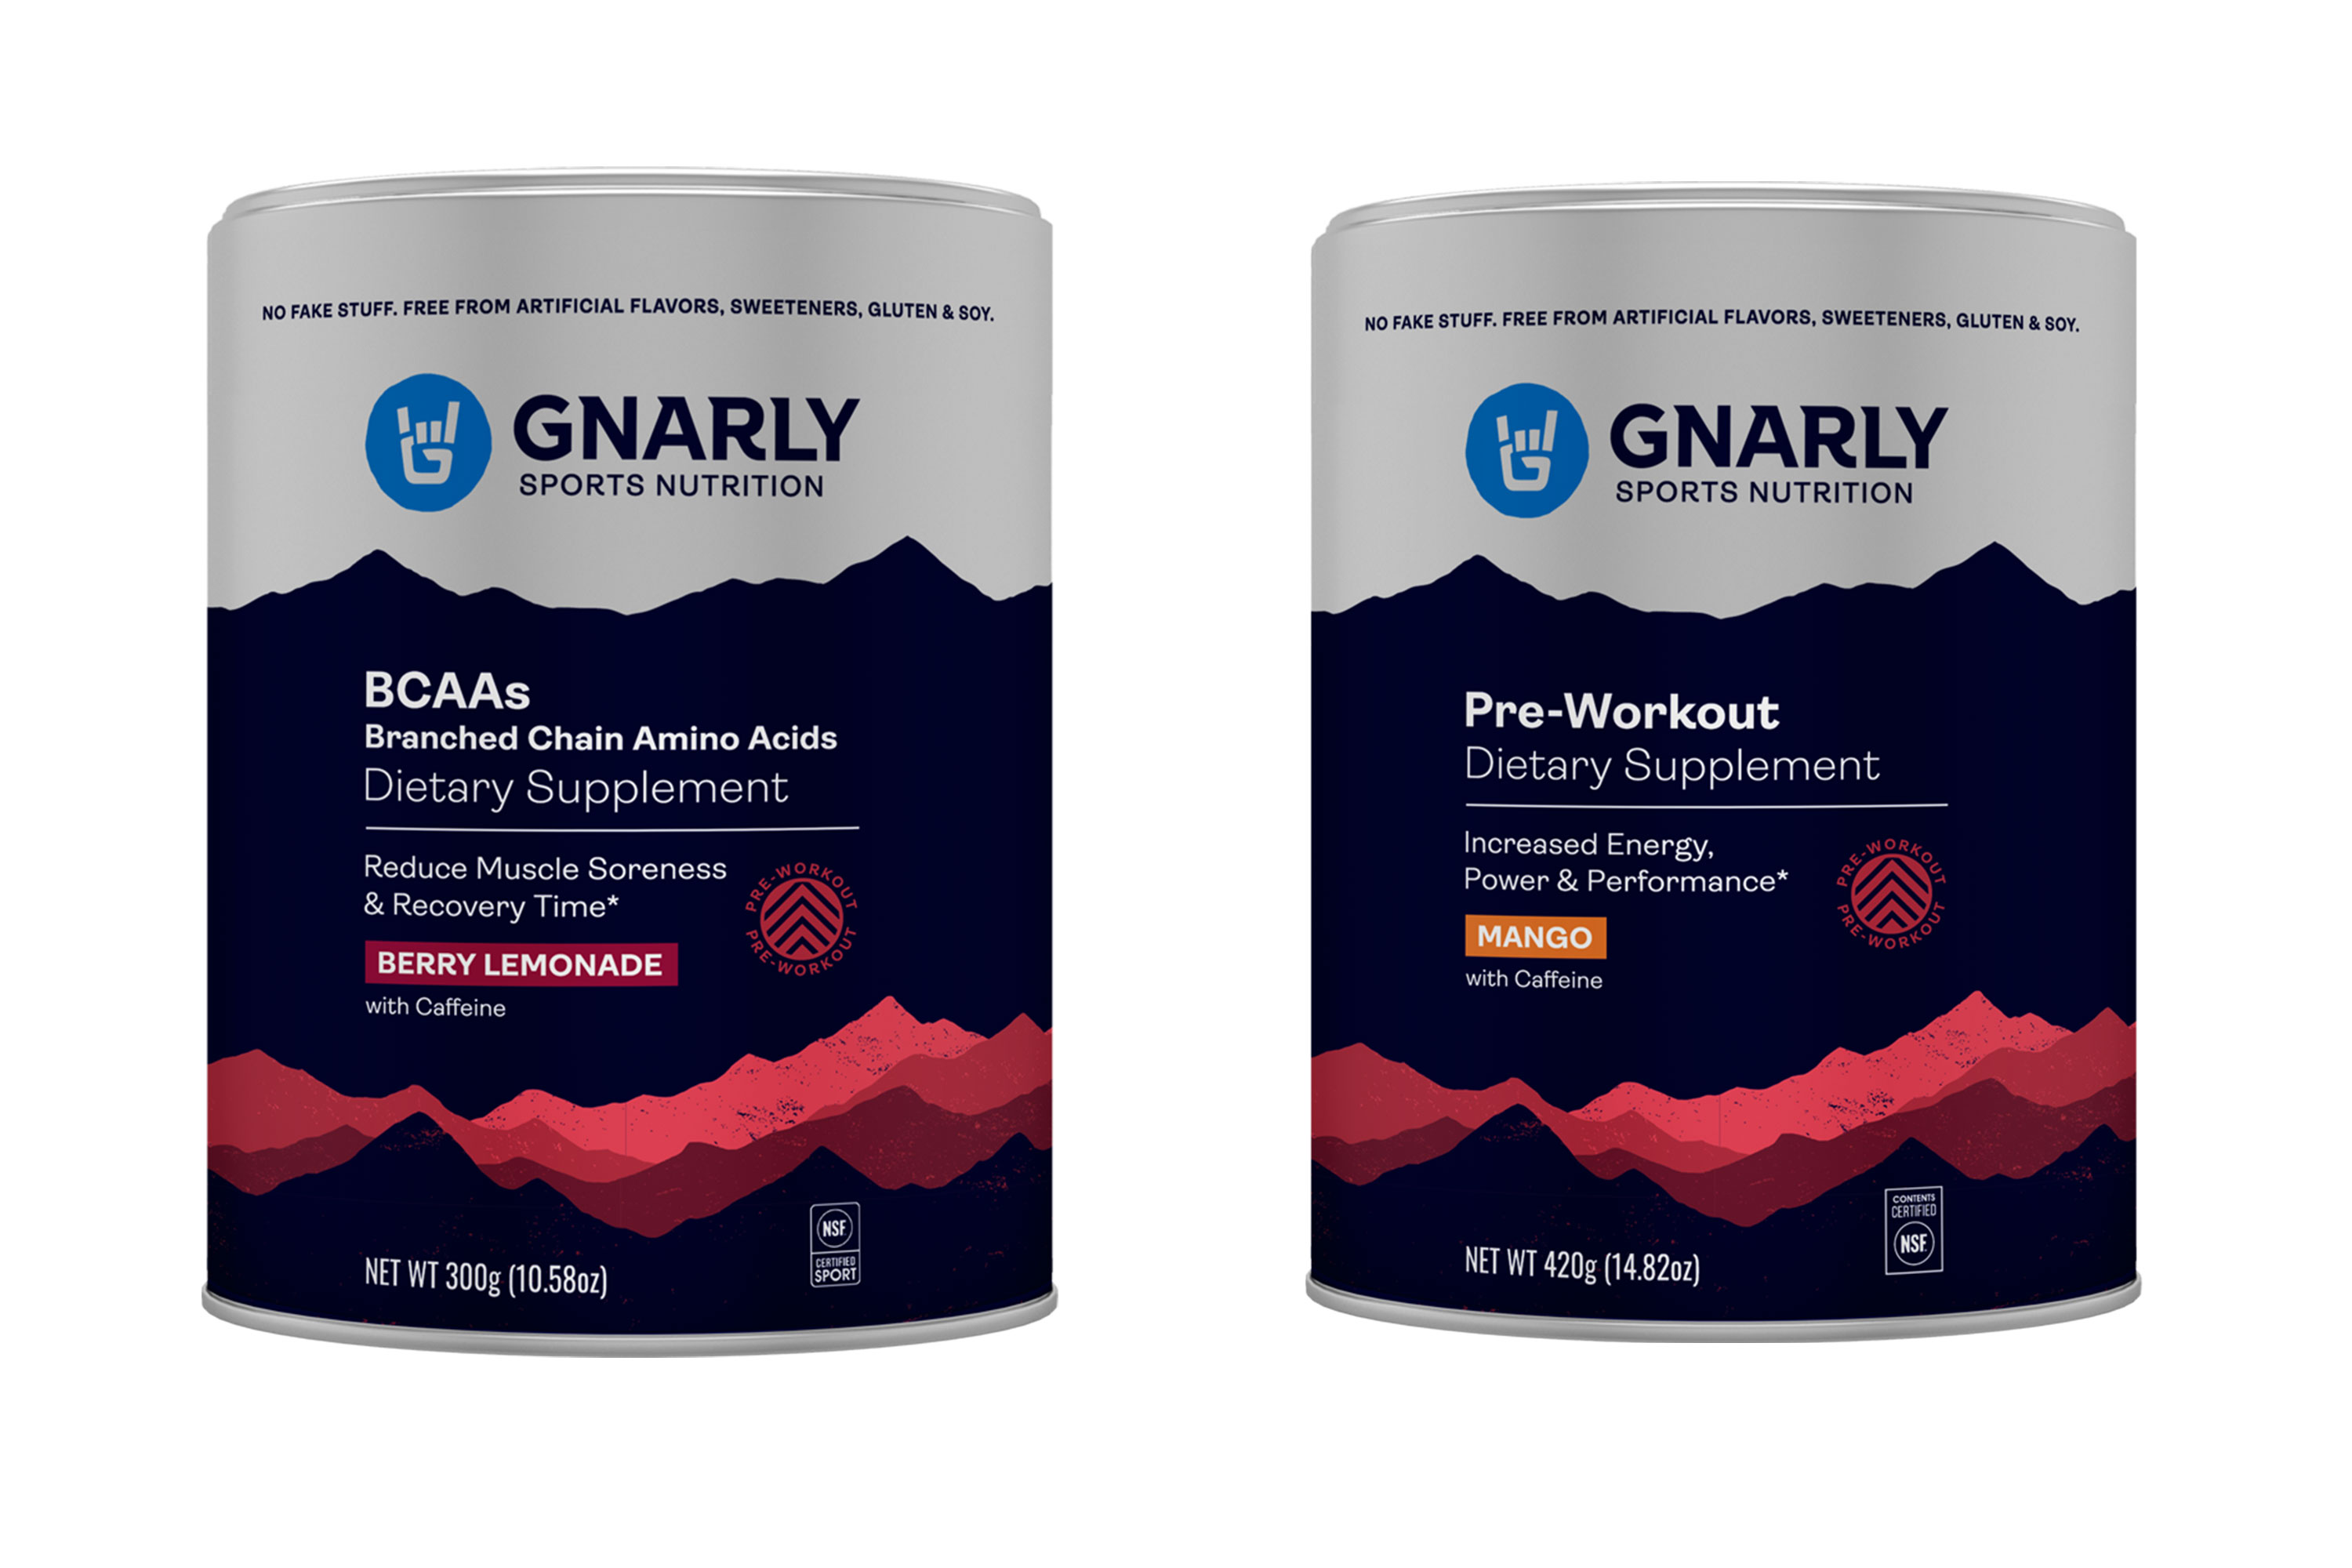 gnarly-nutrition-bcaas-preworkout